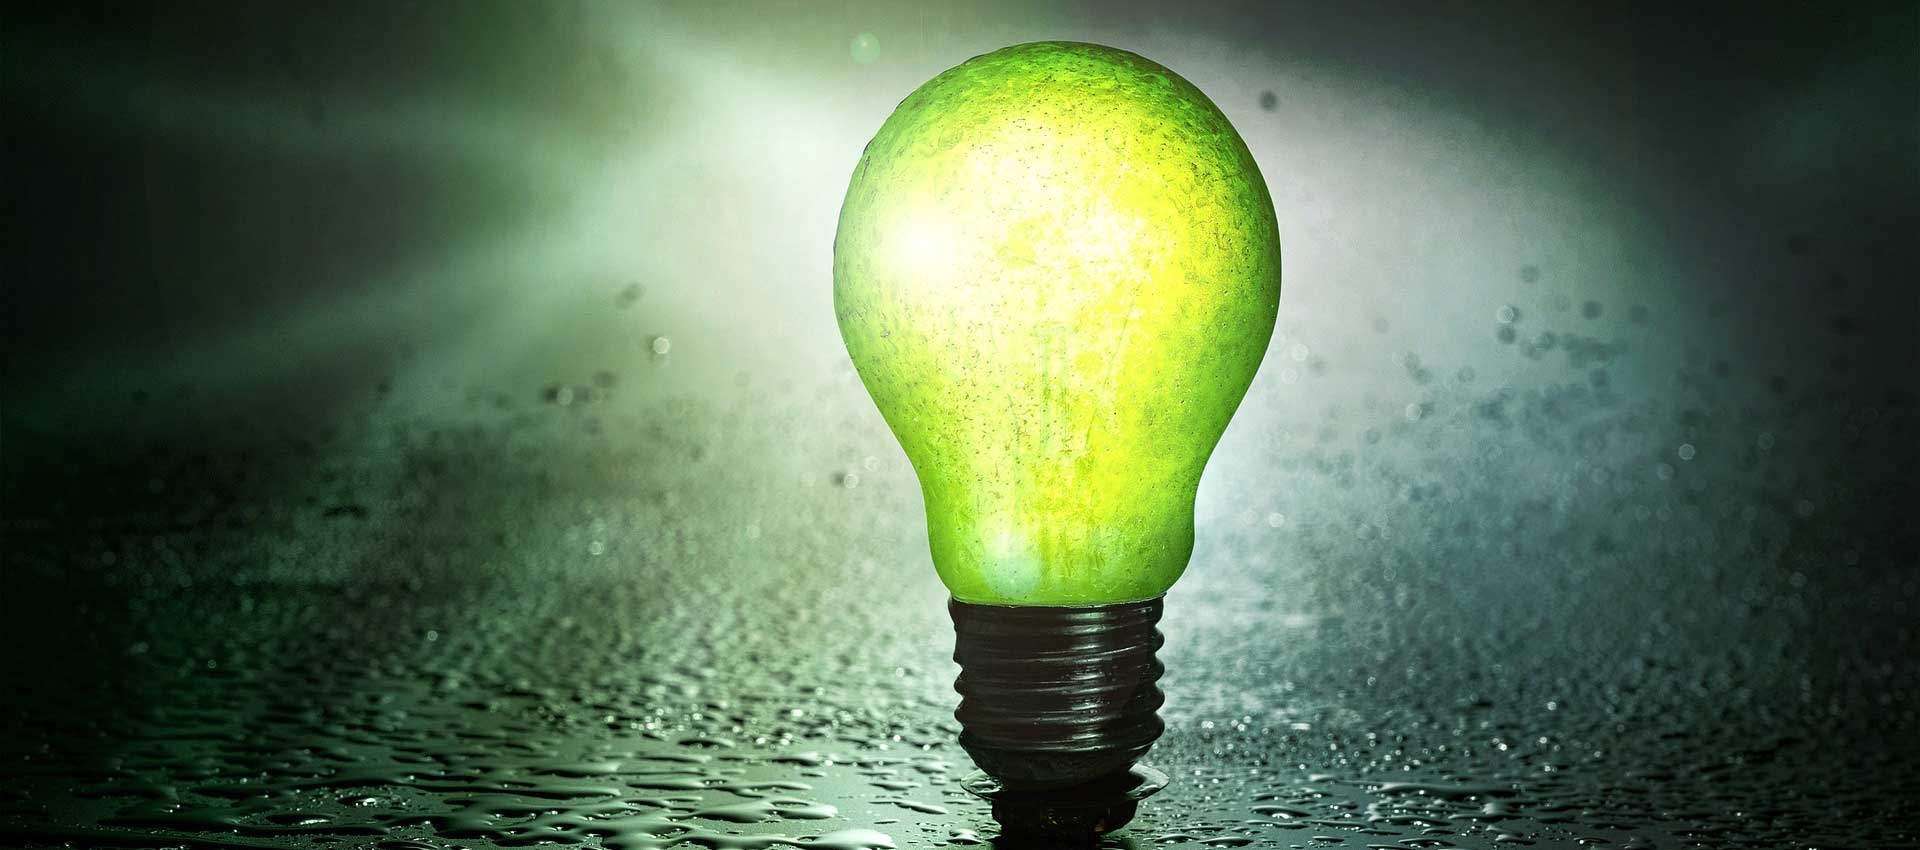 The Environment, Energy Reduction & LED Lighting